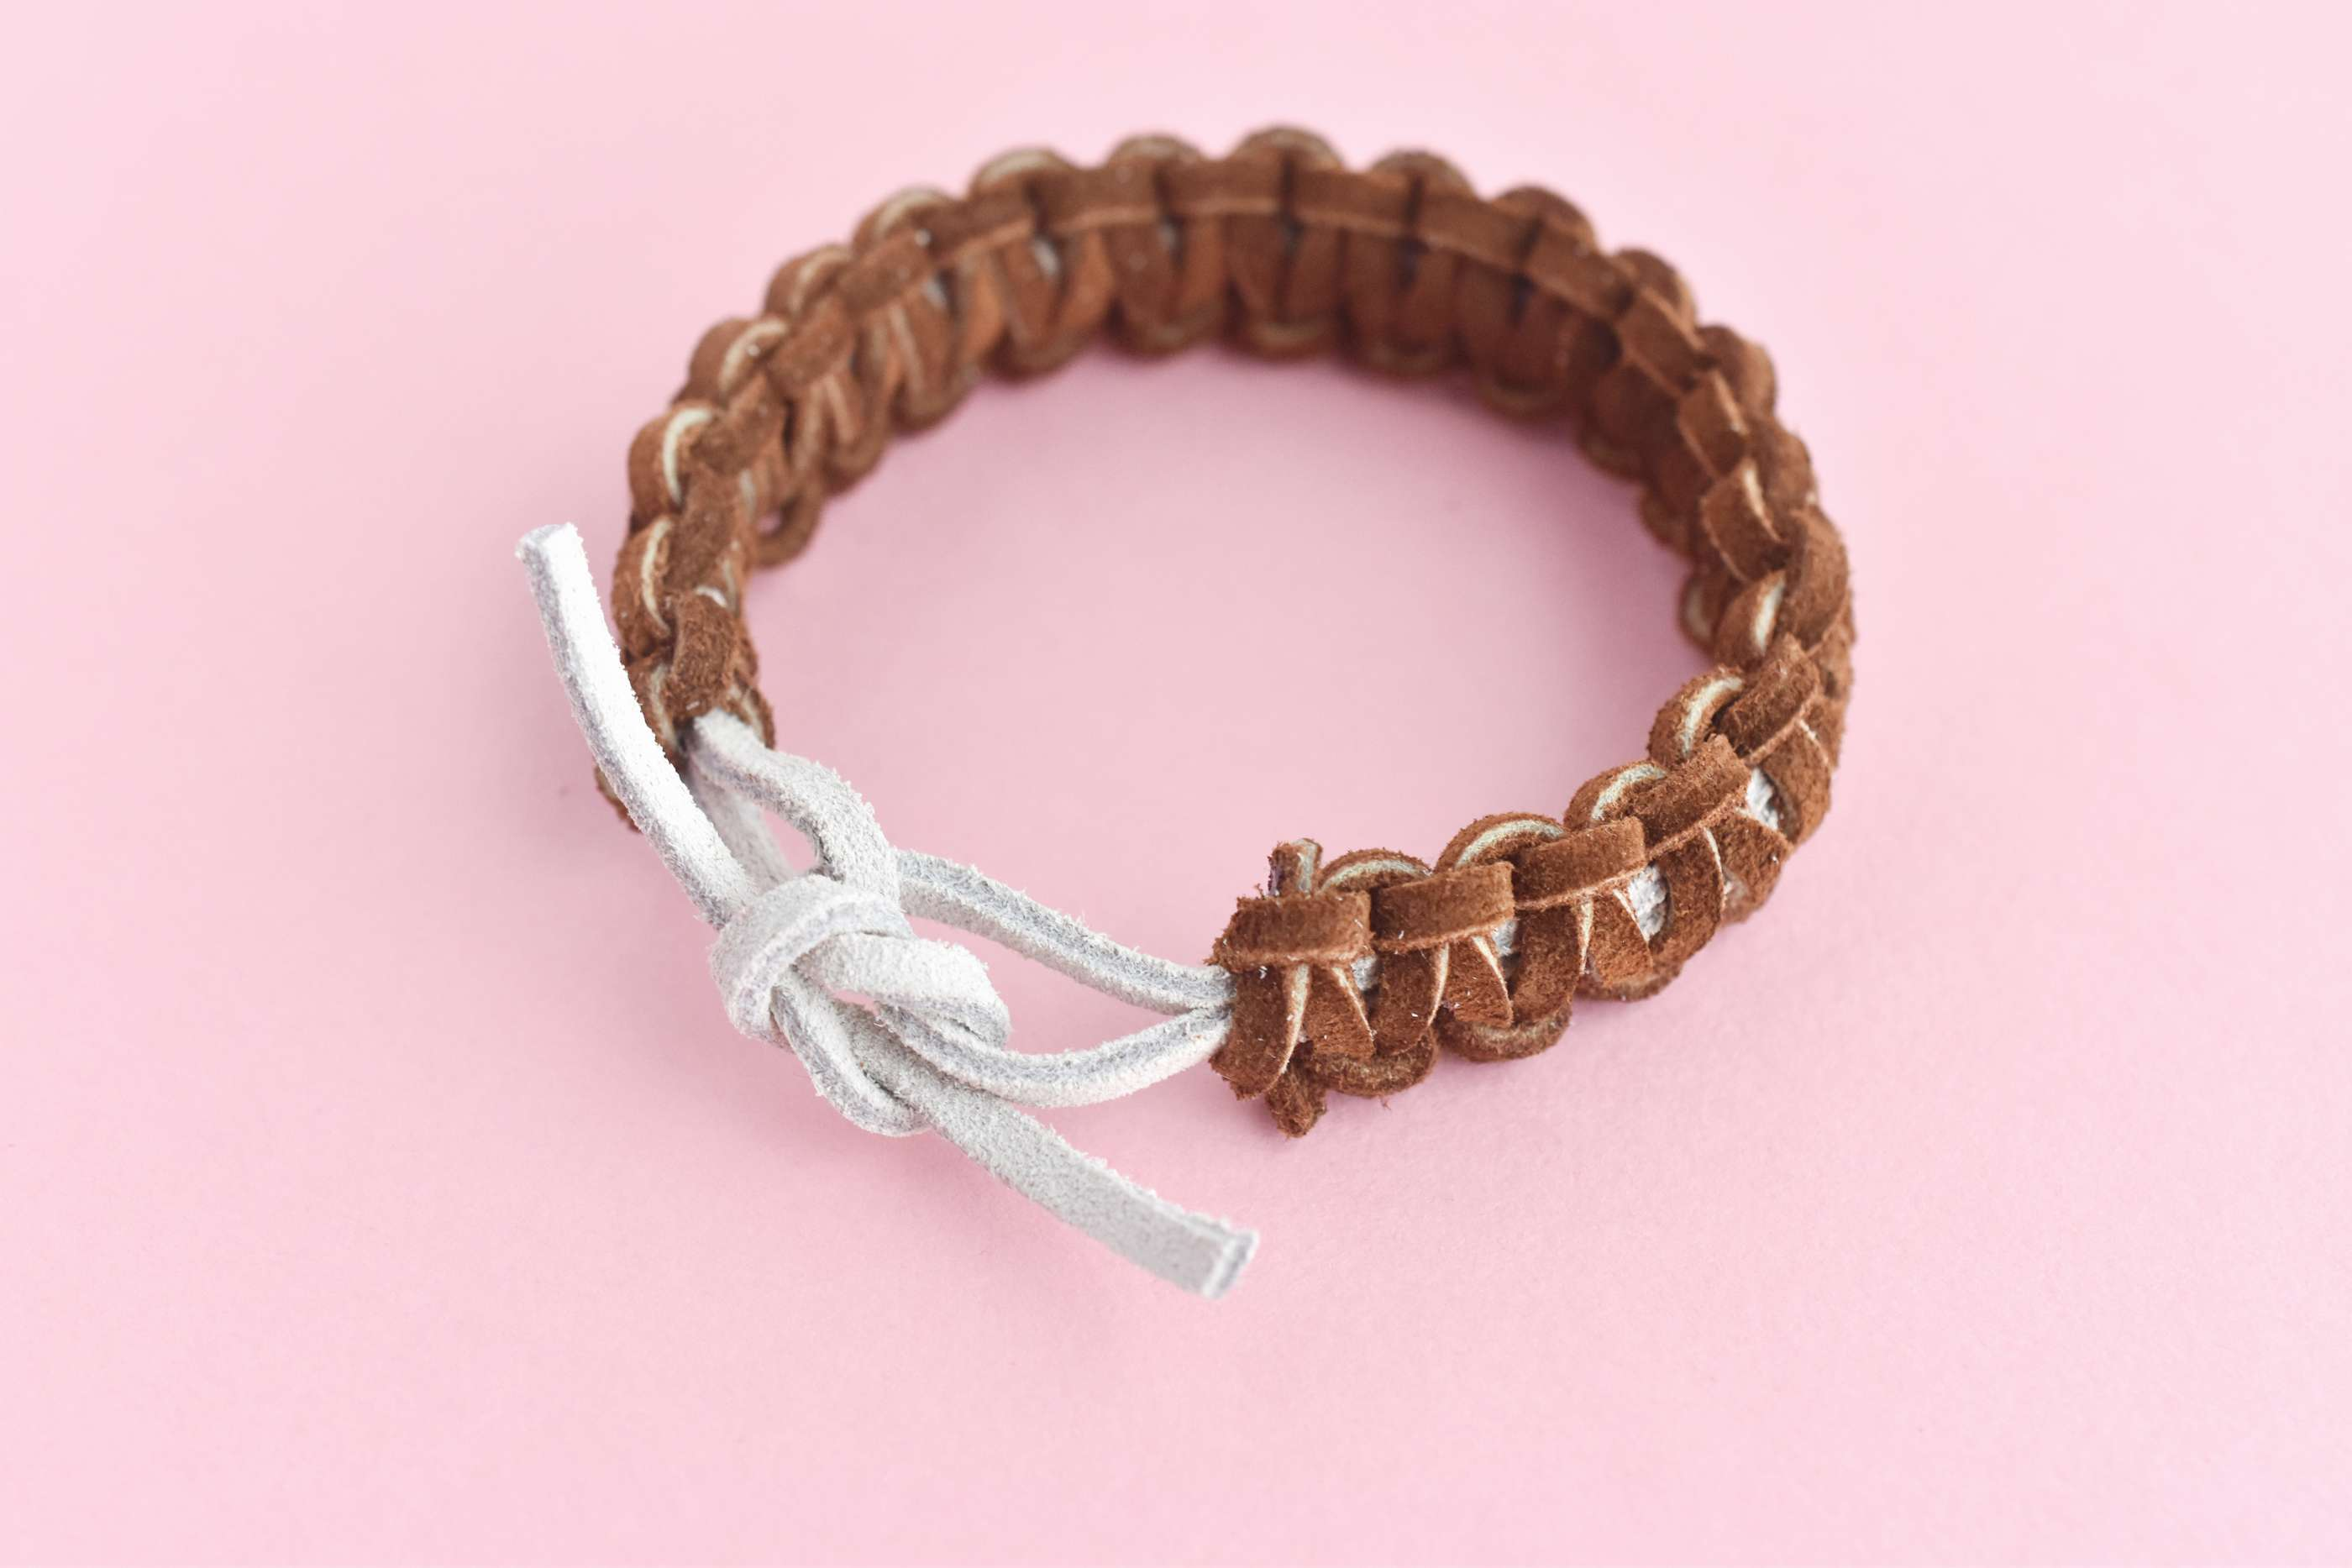 Tie the Bracelet with a Square Knot